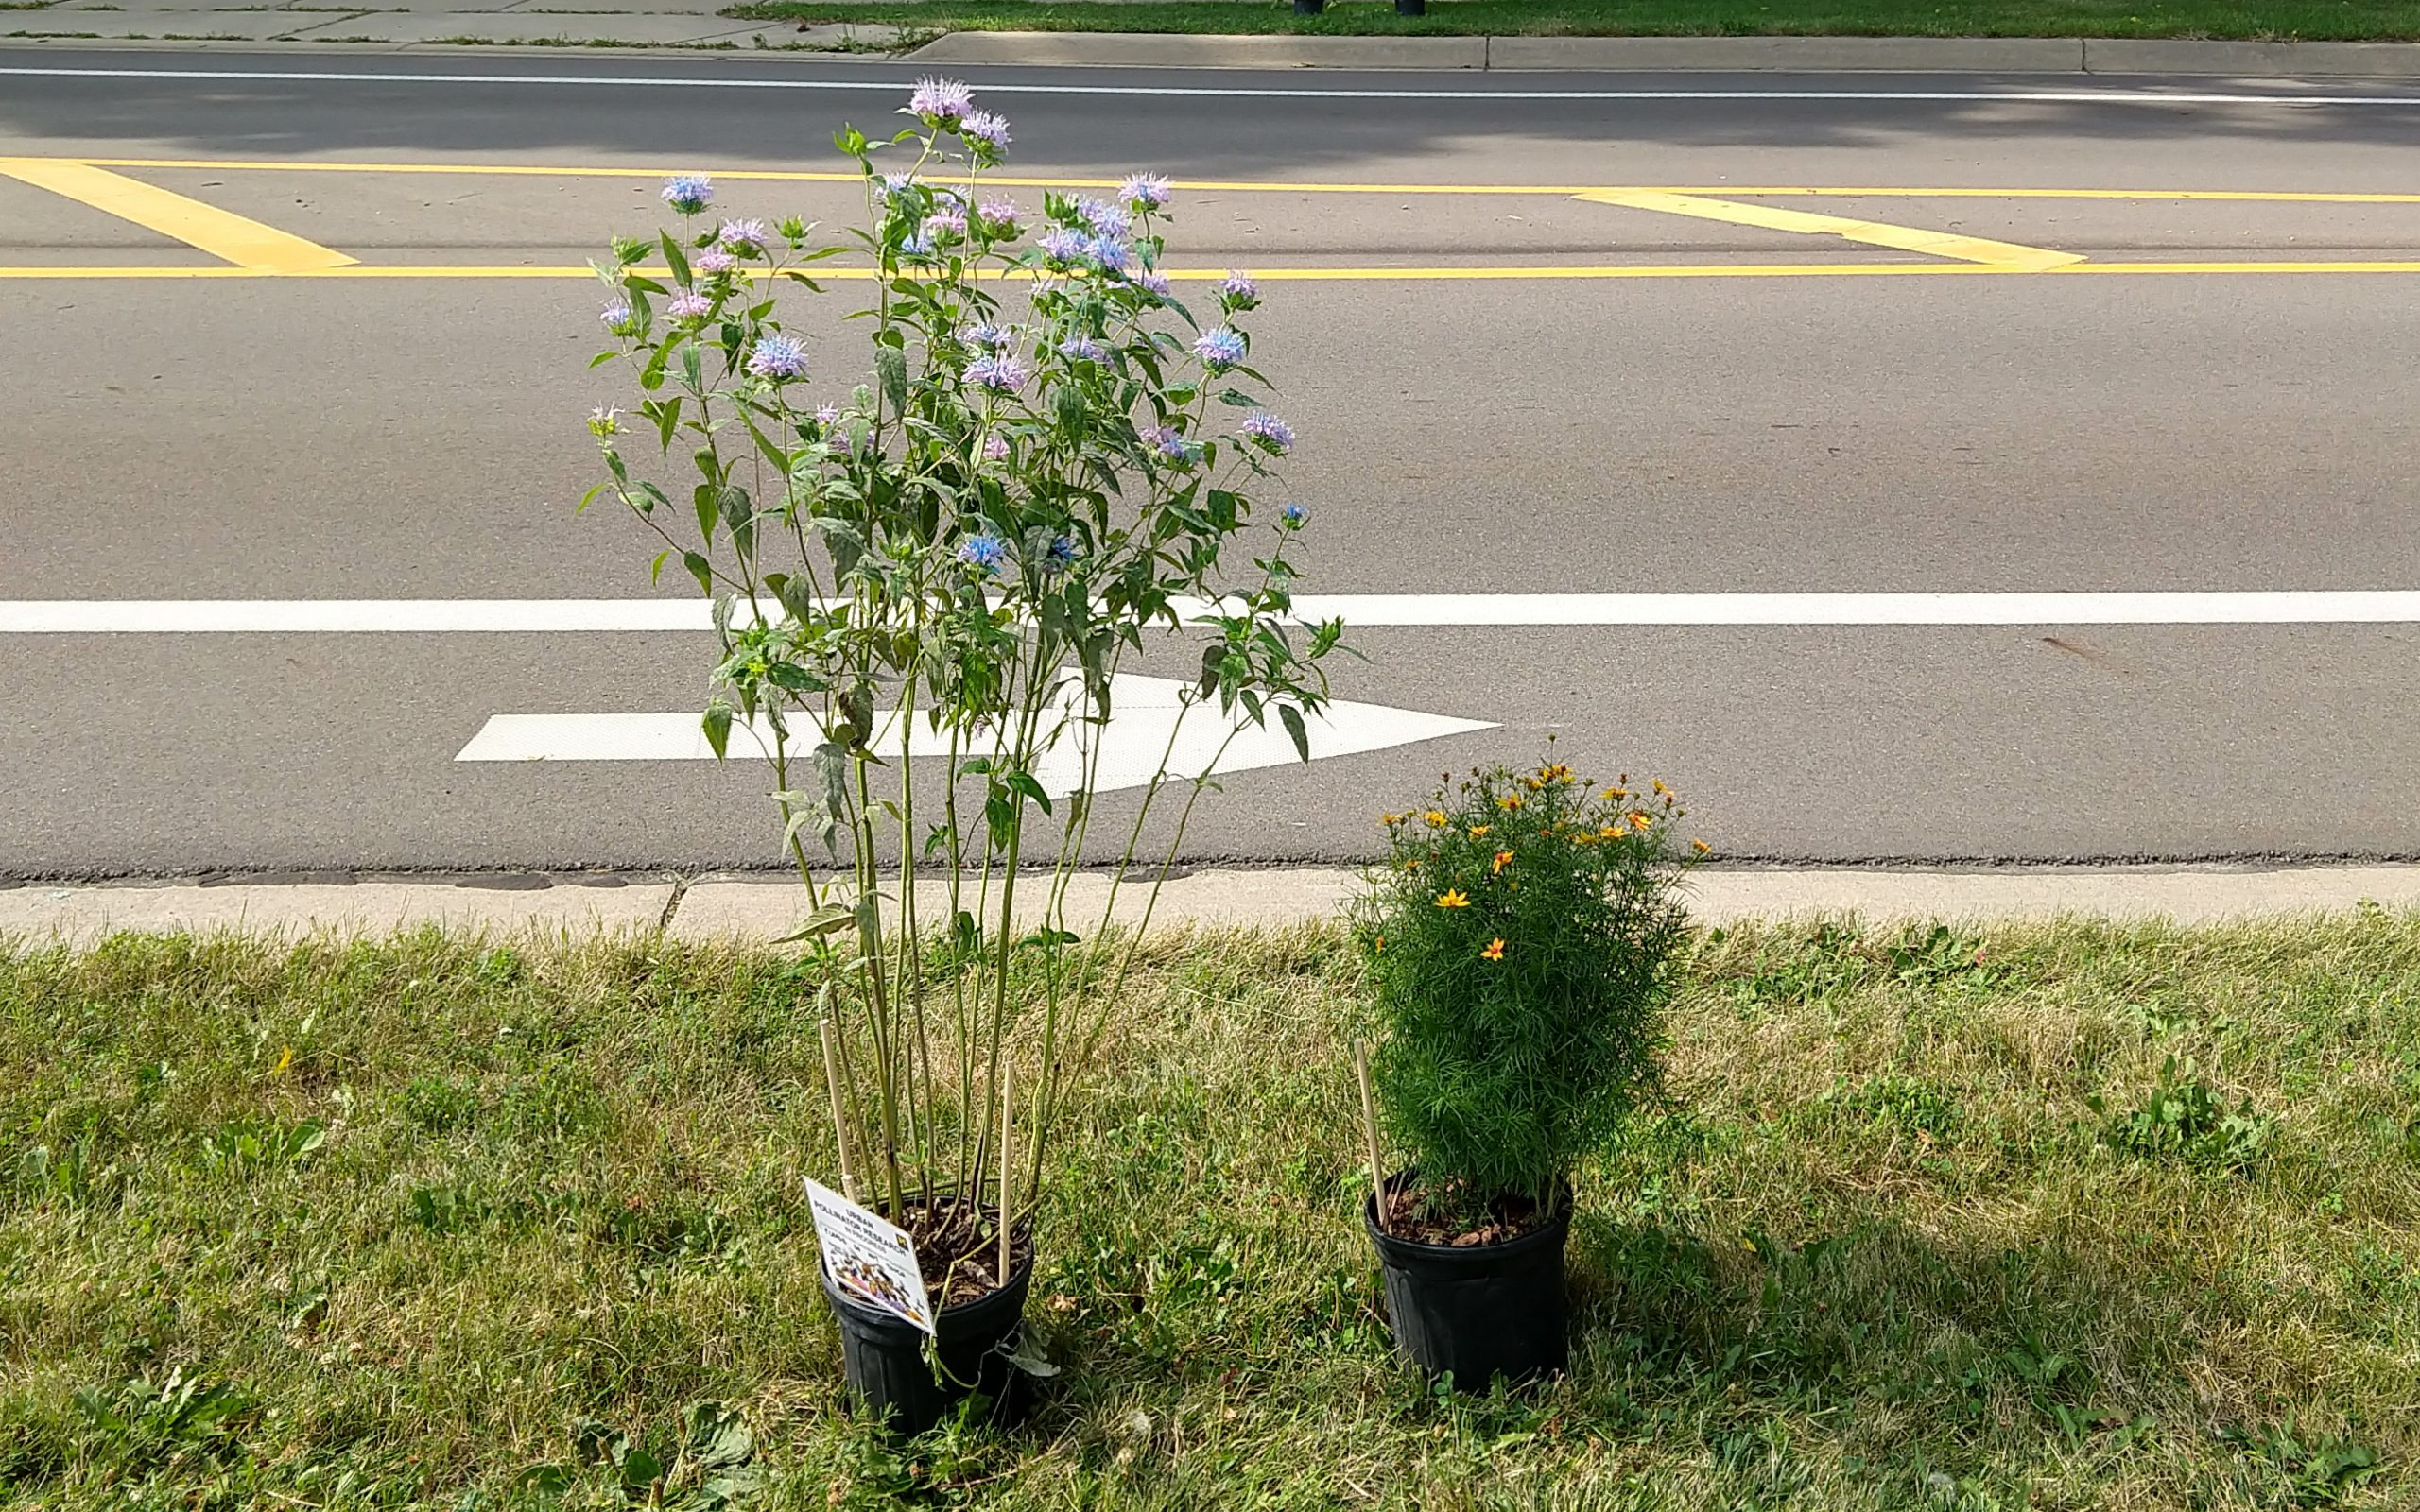 Bee balm and coreopsis plants across the road from one another.